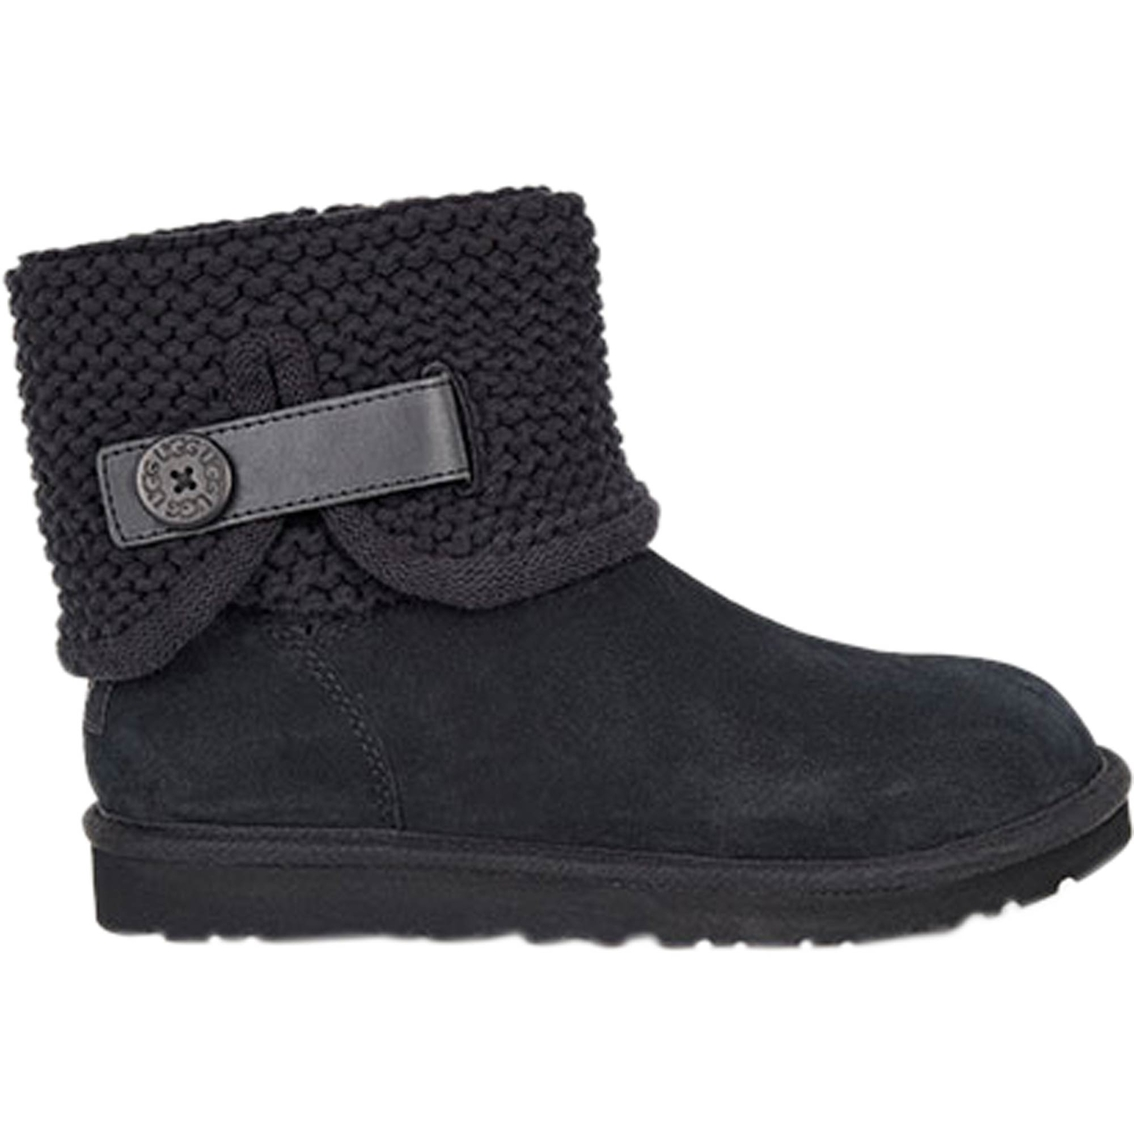 229d6971818 Ugg Shaina Knit Boots | Booties | Shoes | Shop The Exchange